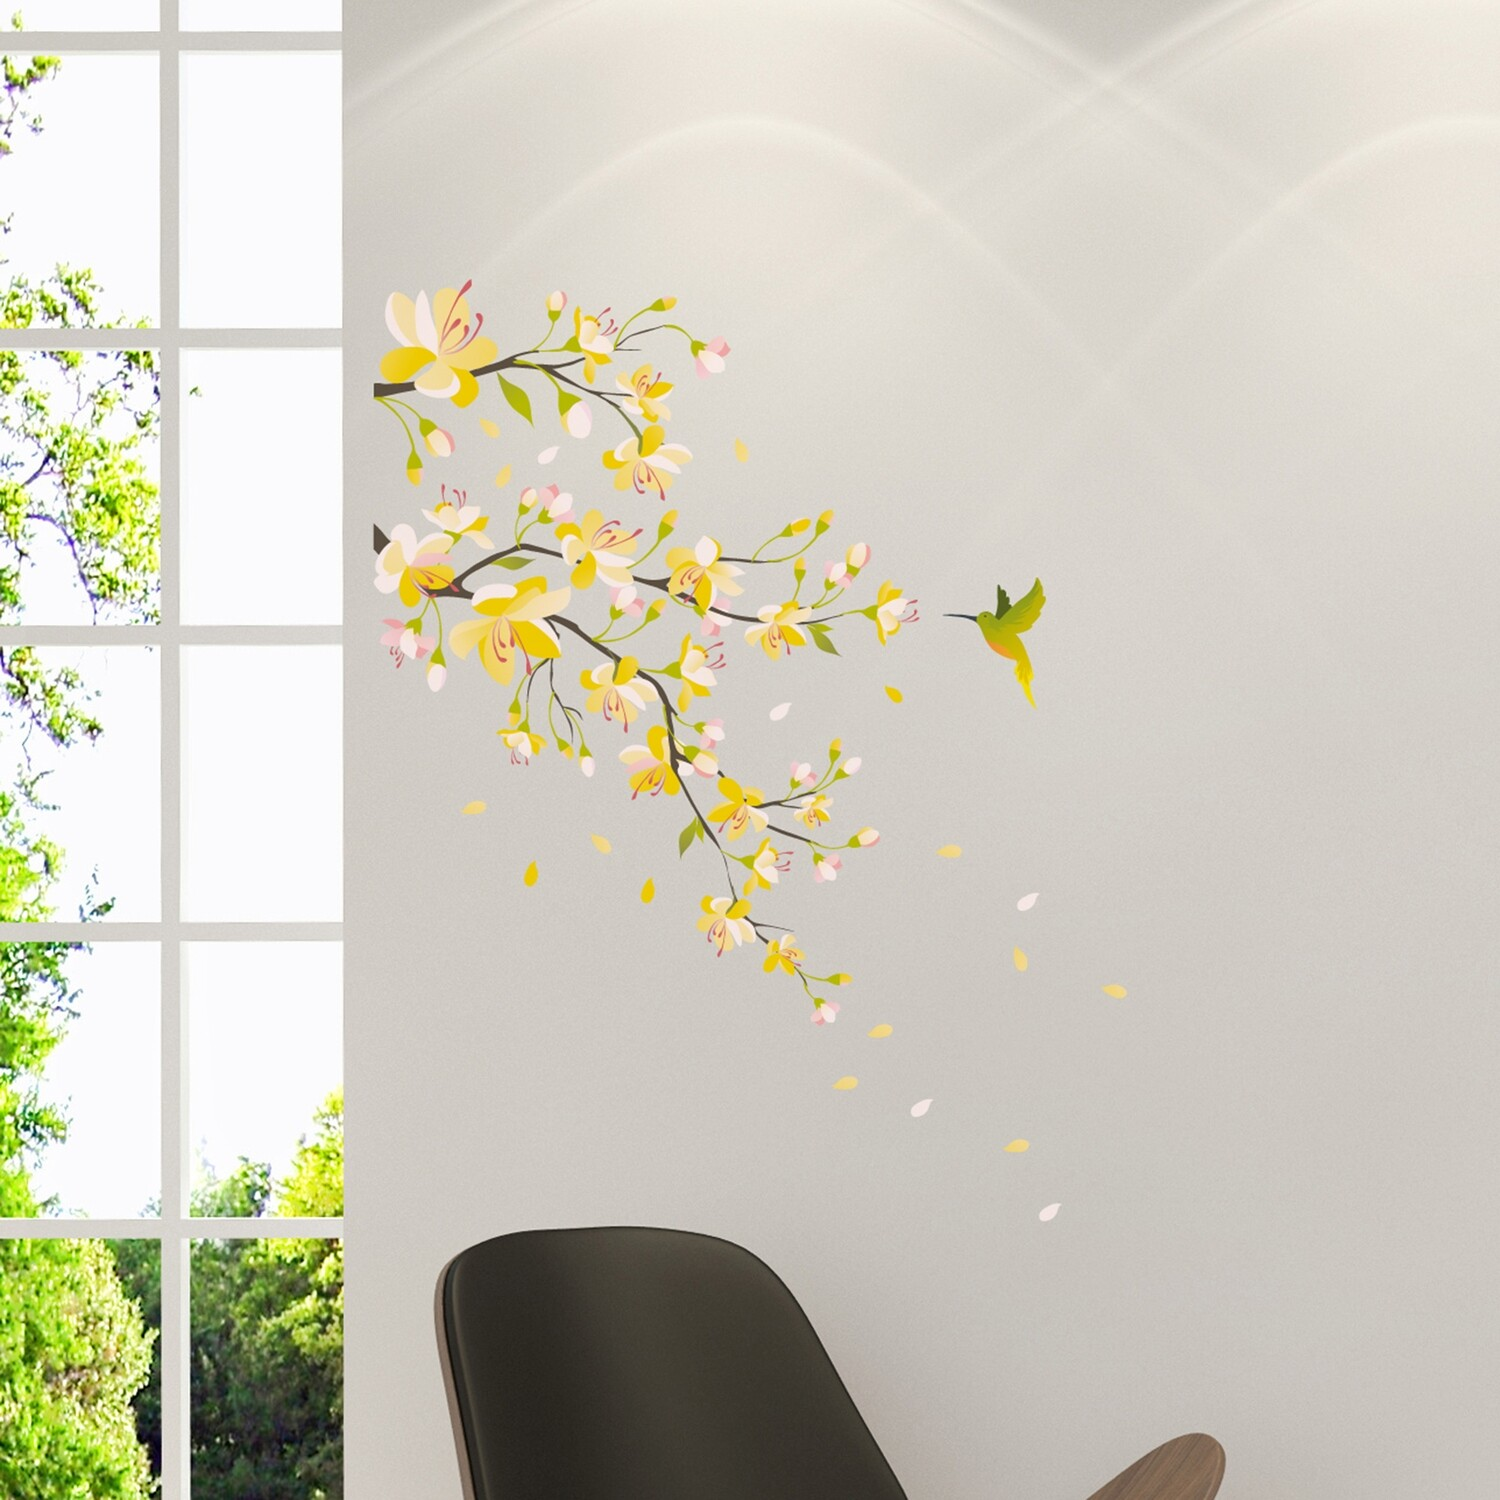 Crearreda 54107 - Yellow Branch Self Adhesive Wall Sticker